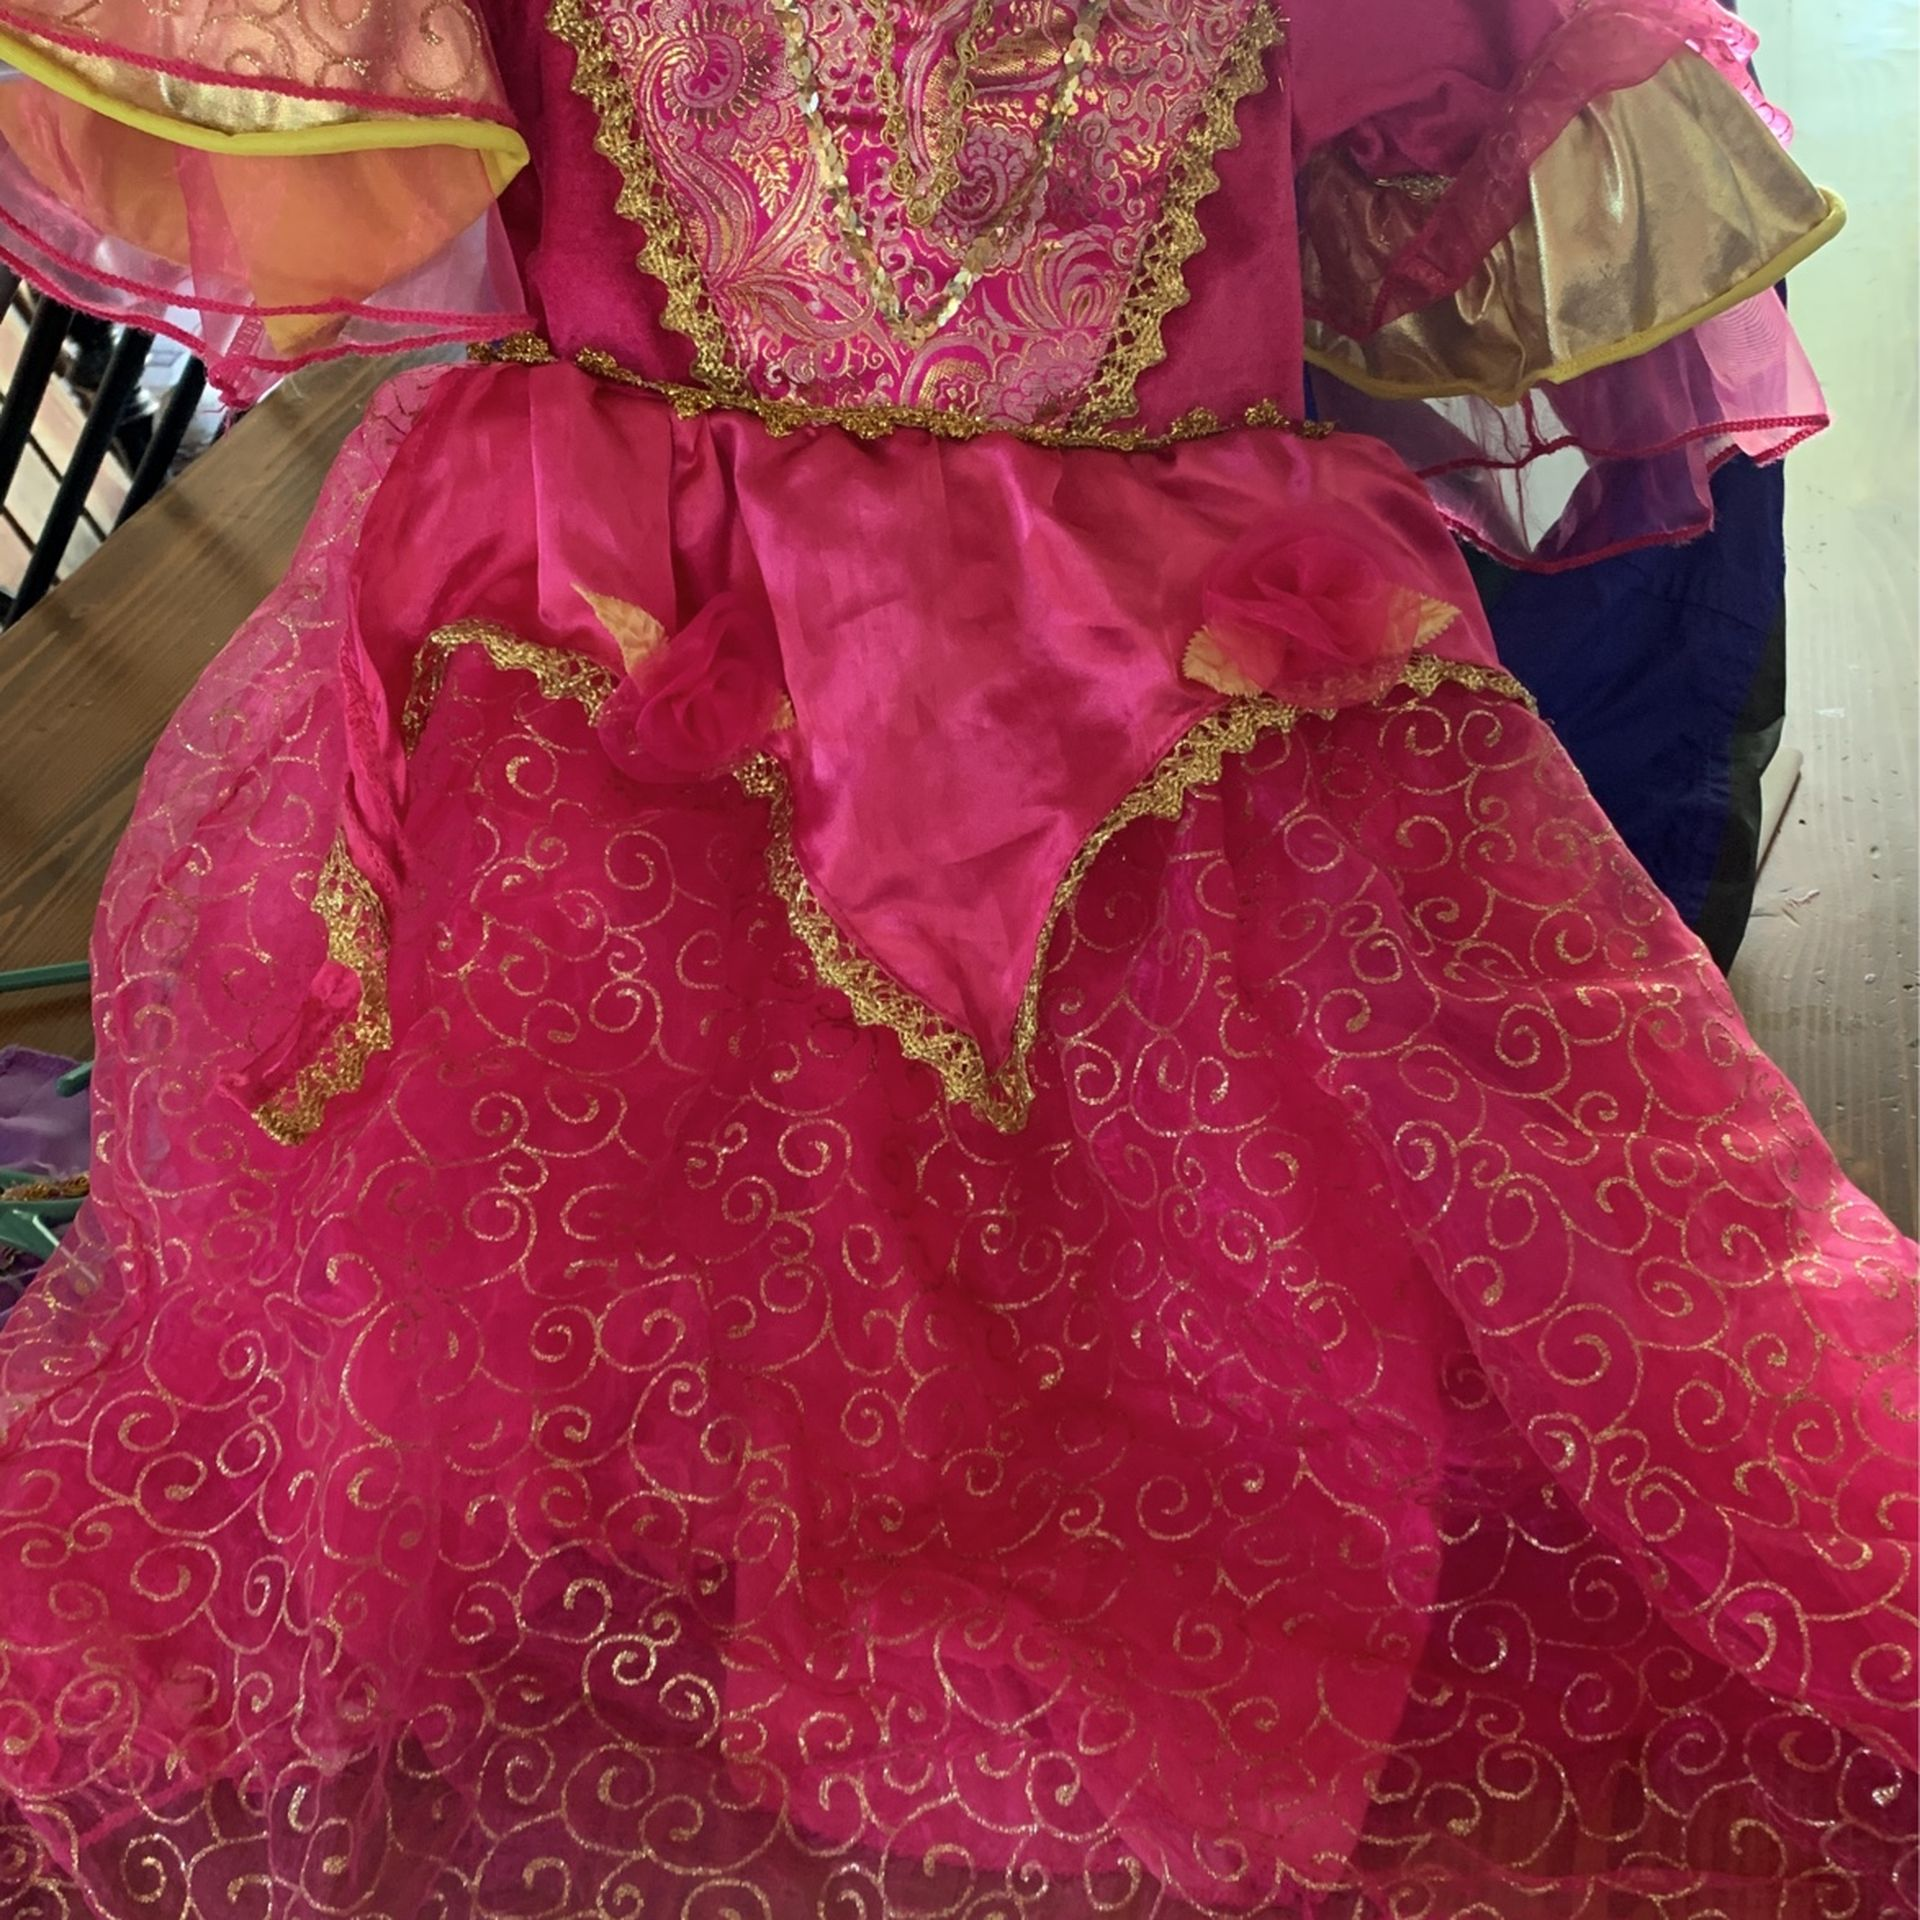 Dress Up Clothes 2t-4t Costumes